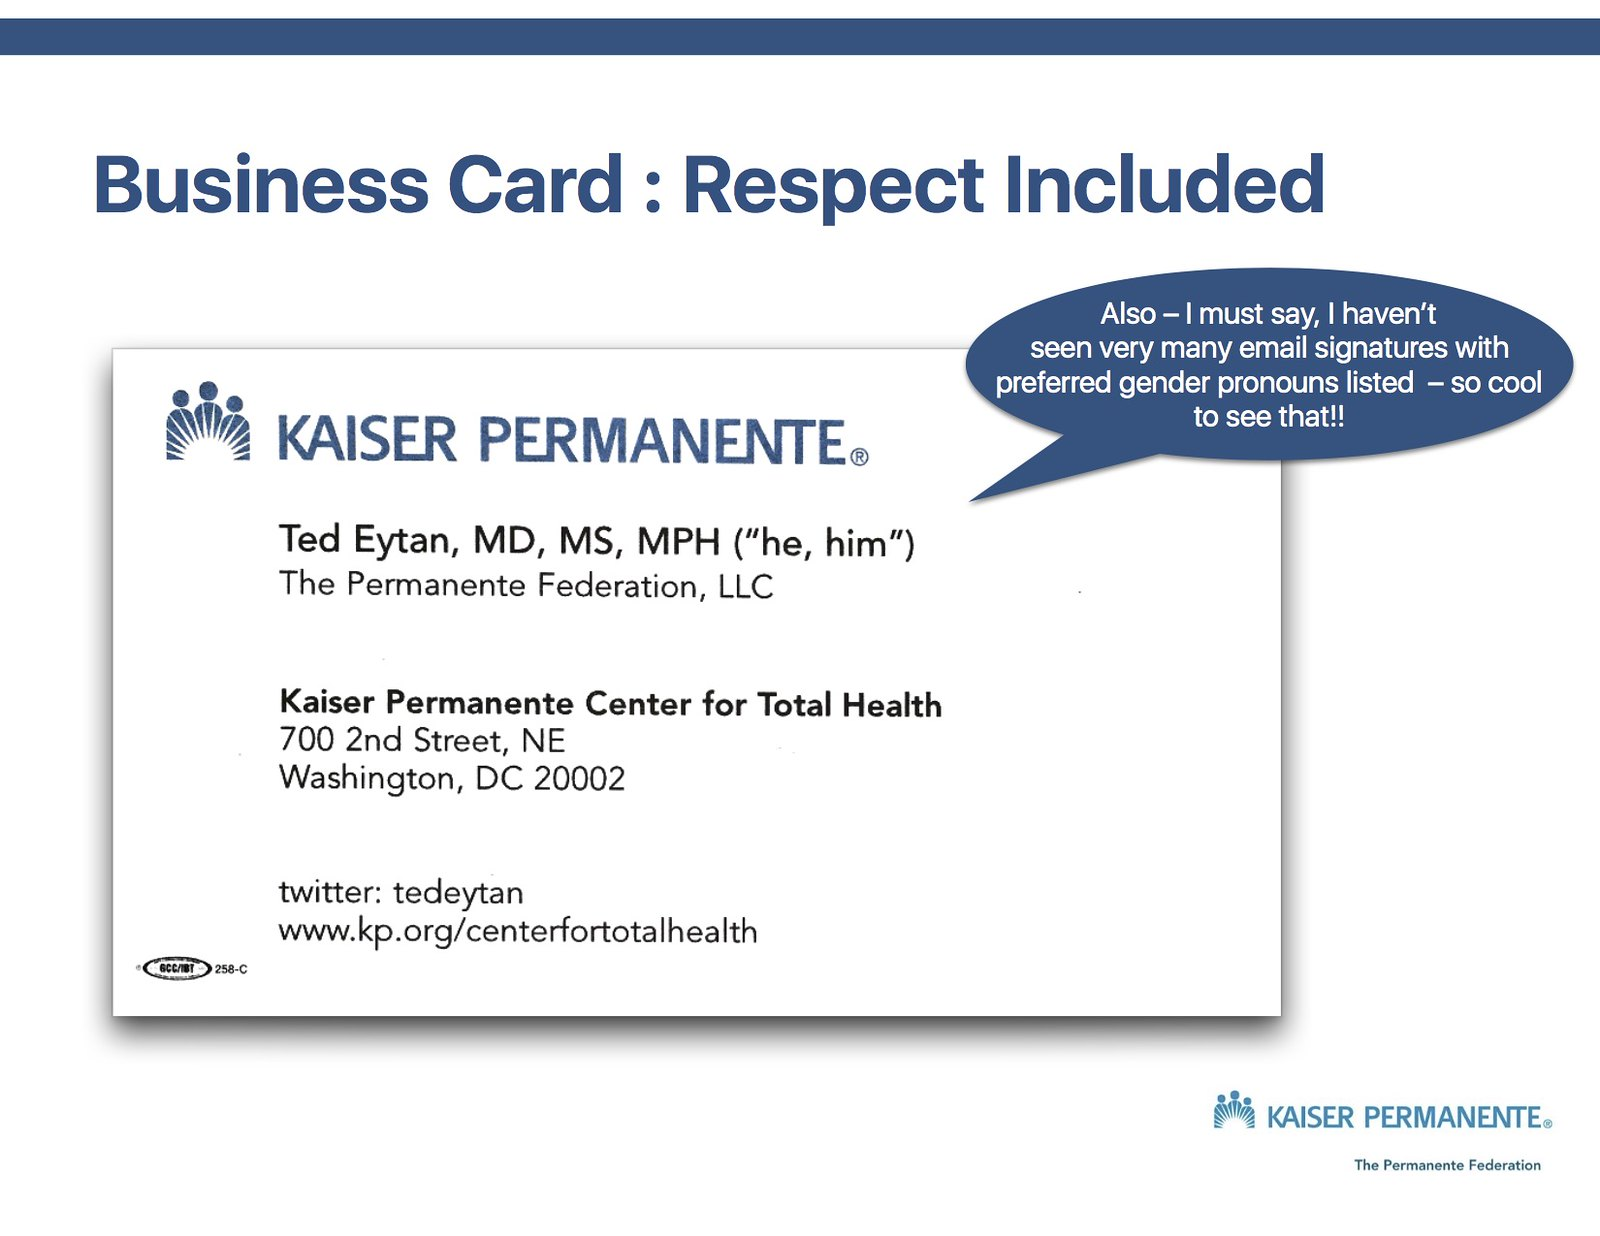 Ted Eytan MD Business Card with Pronouns